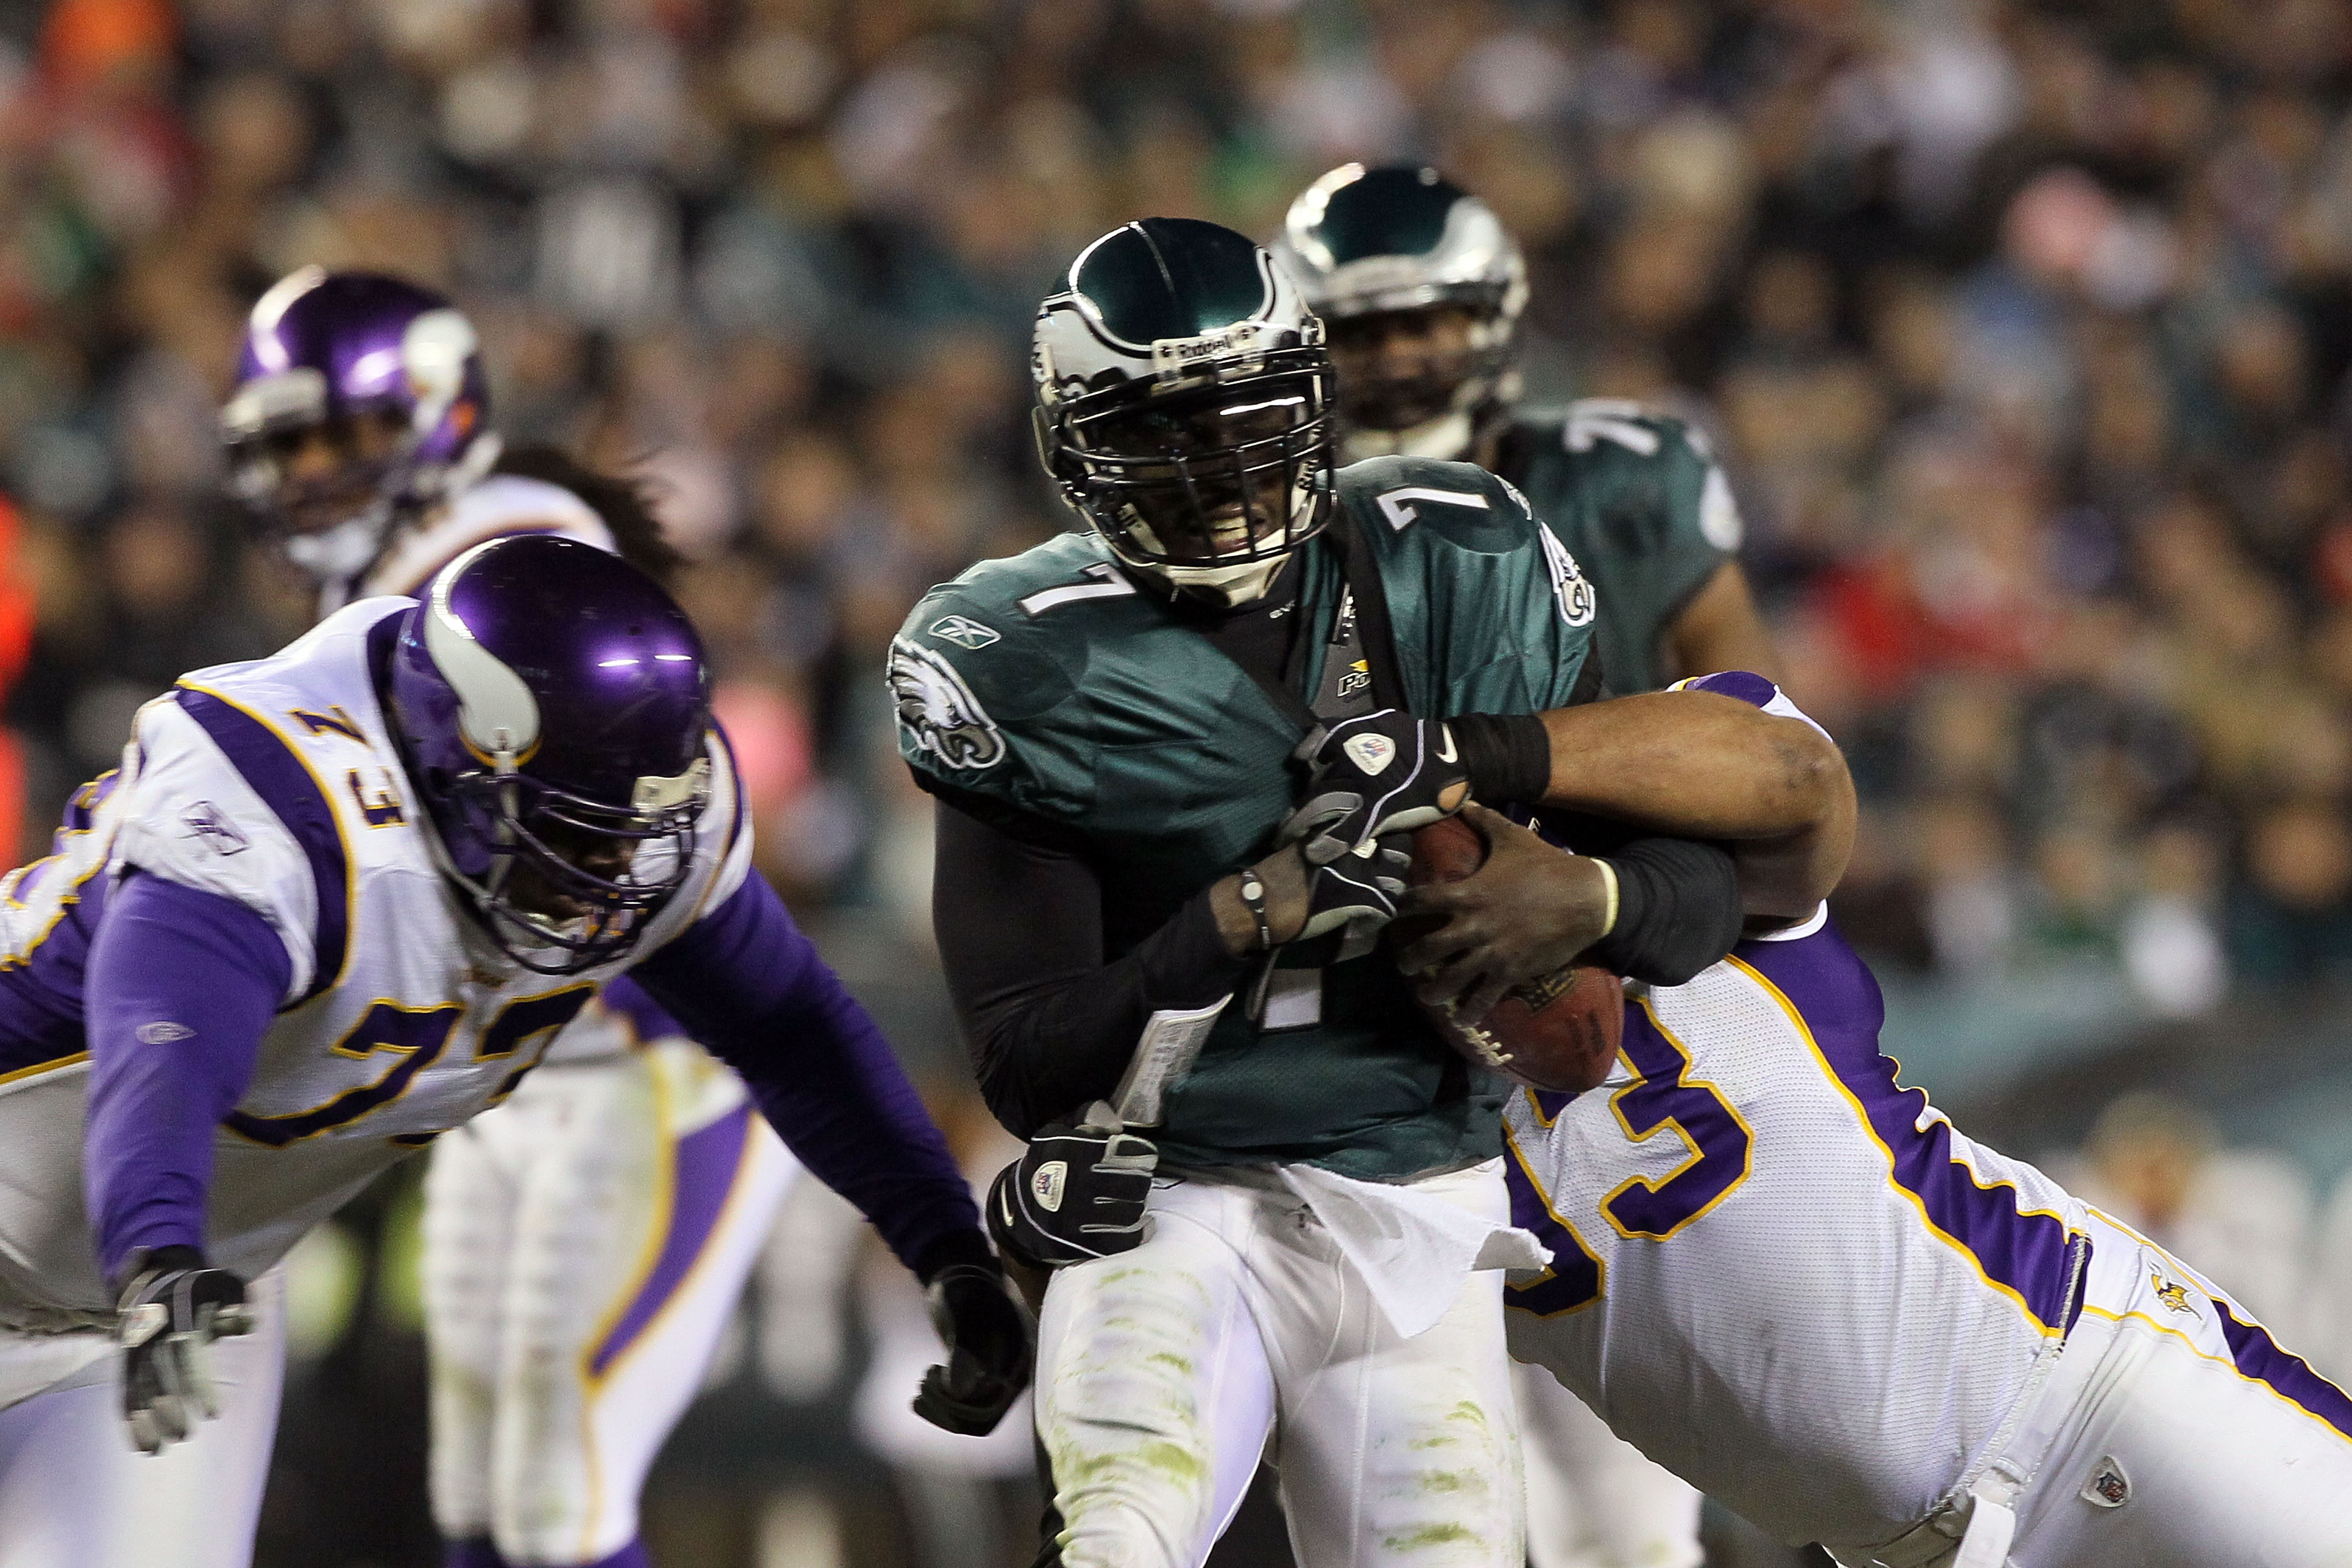 PHILADELPHIA, PA - DECEMBER 26:  Jamarca Sanford #33 of the Minnesota Vikings tackles Michael Vick #7 of the Philadelphia Eagles to cause a fumble in the 3rd quarter at Lincoln Financial Field on December 26, 2010 in Philadelphia, Pennsylvania.  (Photo by